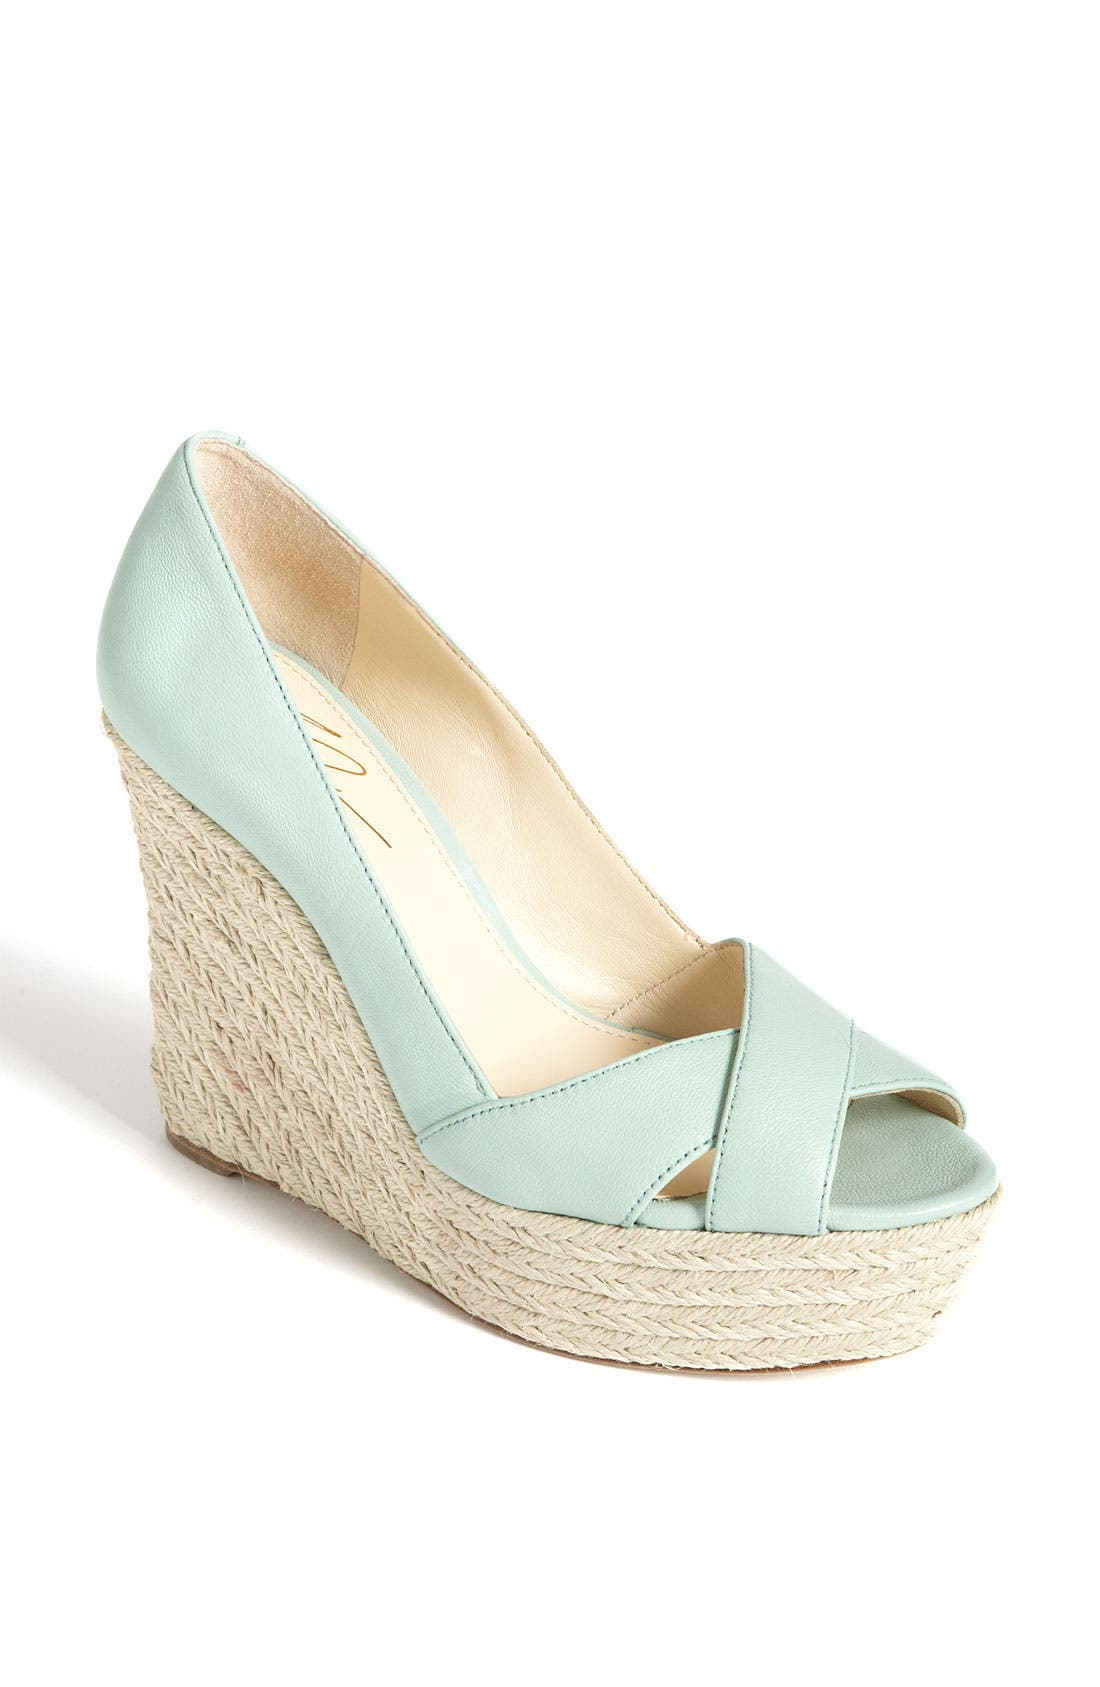 Alternate Image 1 Selected - VC Signature 'Nadine' Wedge